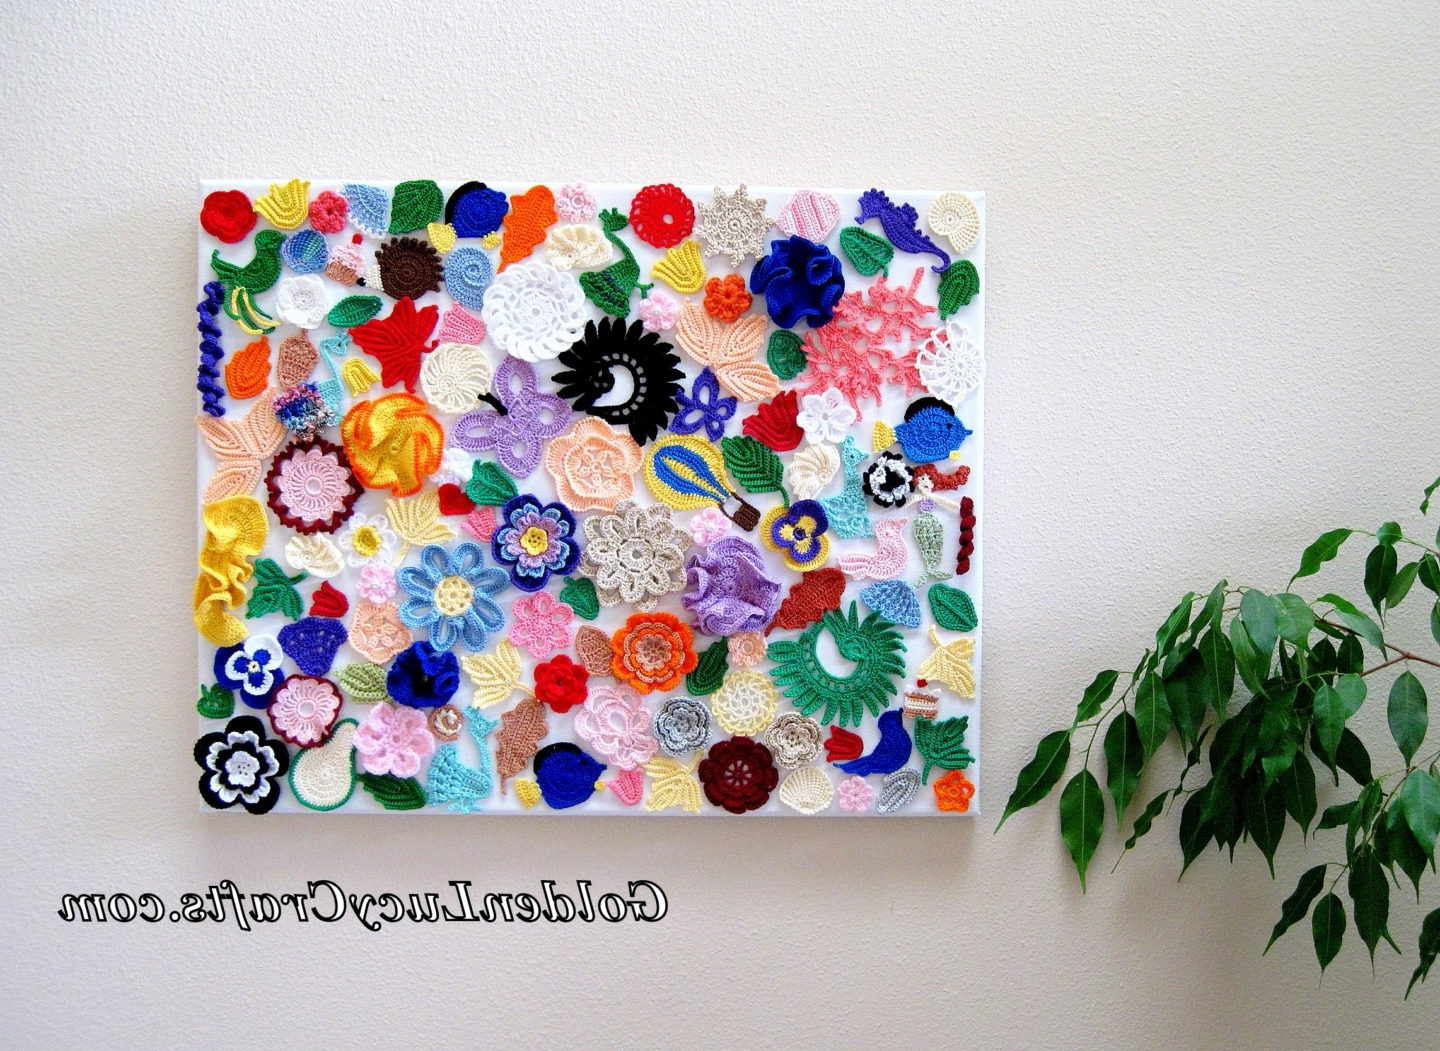 Crochet Wall Hanging, Wall Decoration, Wall Art, Craft Idea For Well Known Crochet Wall Art (Gallery 1 of 20)